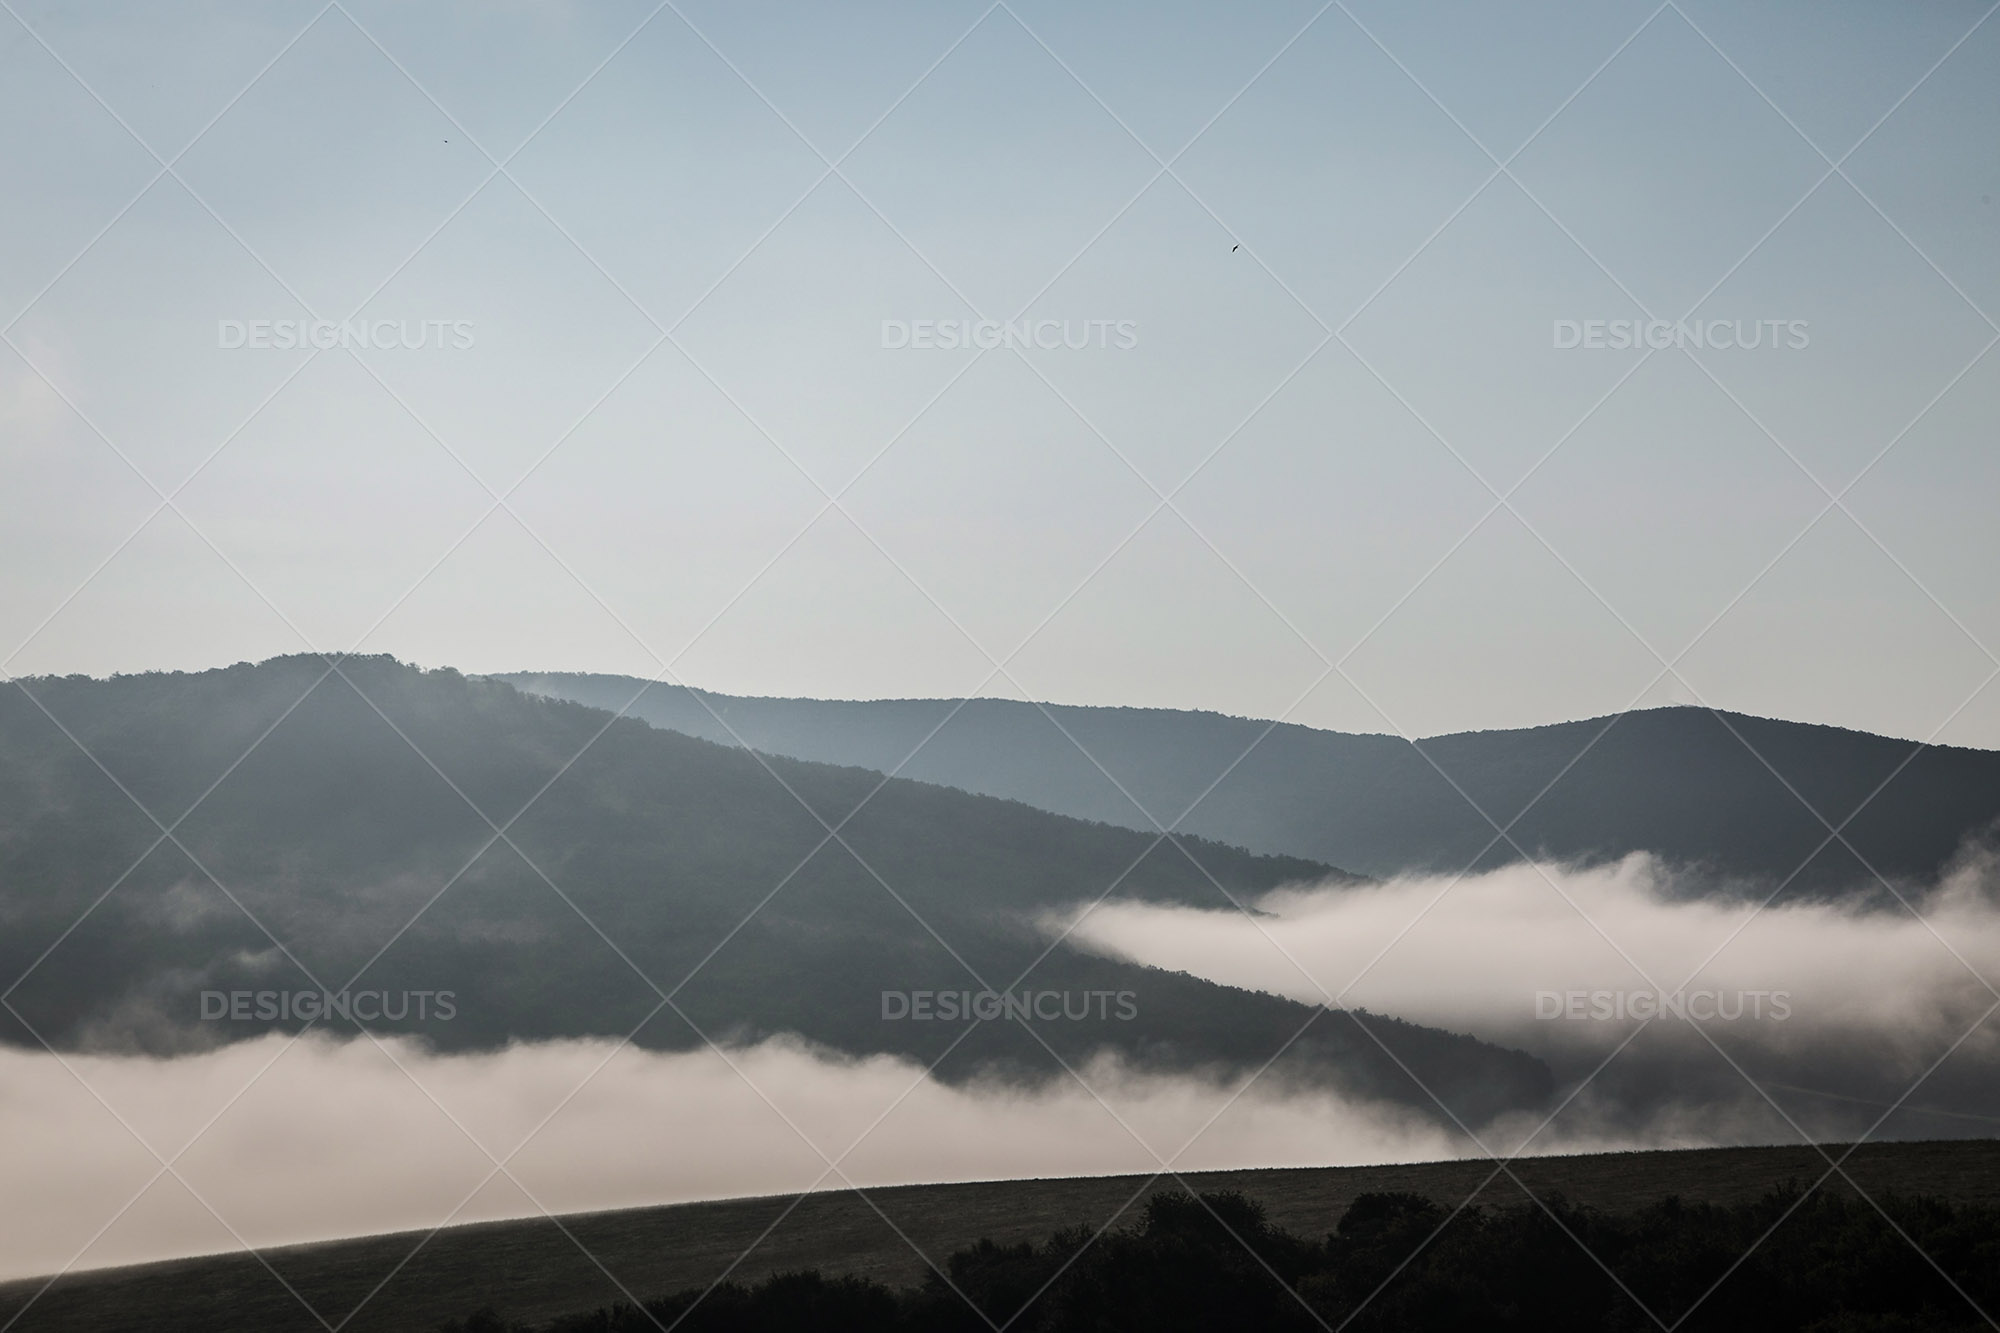 Mist Clearing In The Valleys Around Holloko In Hungary 3